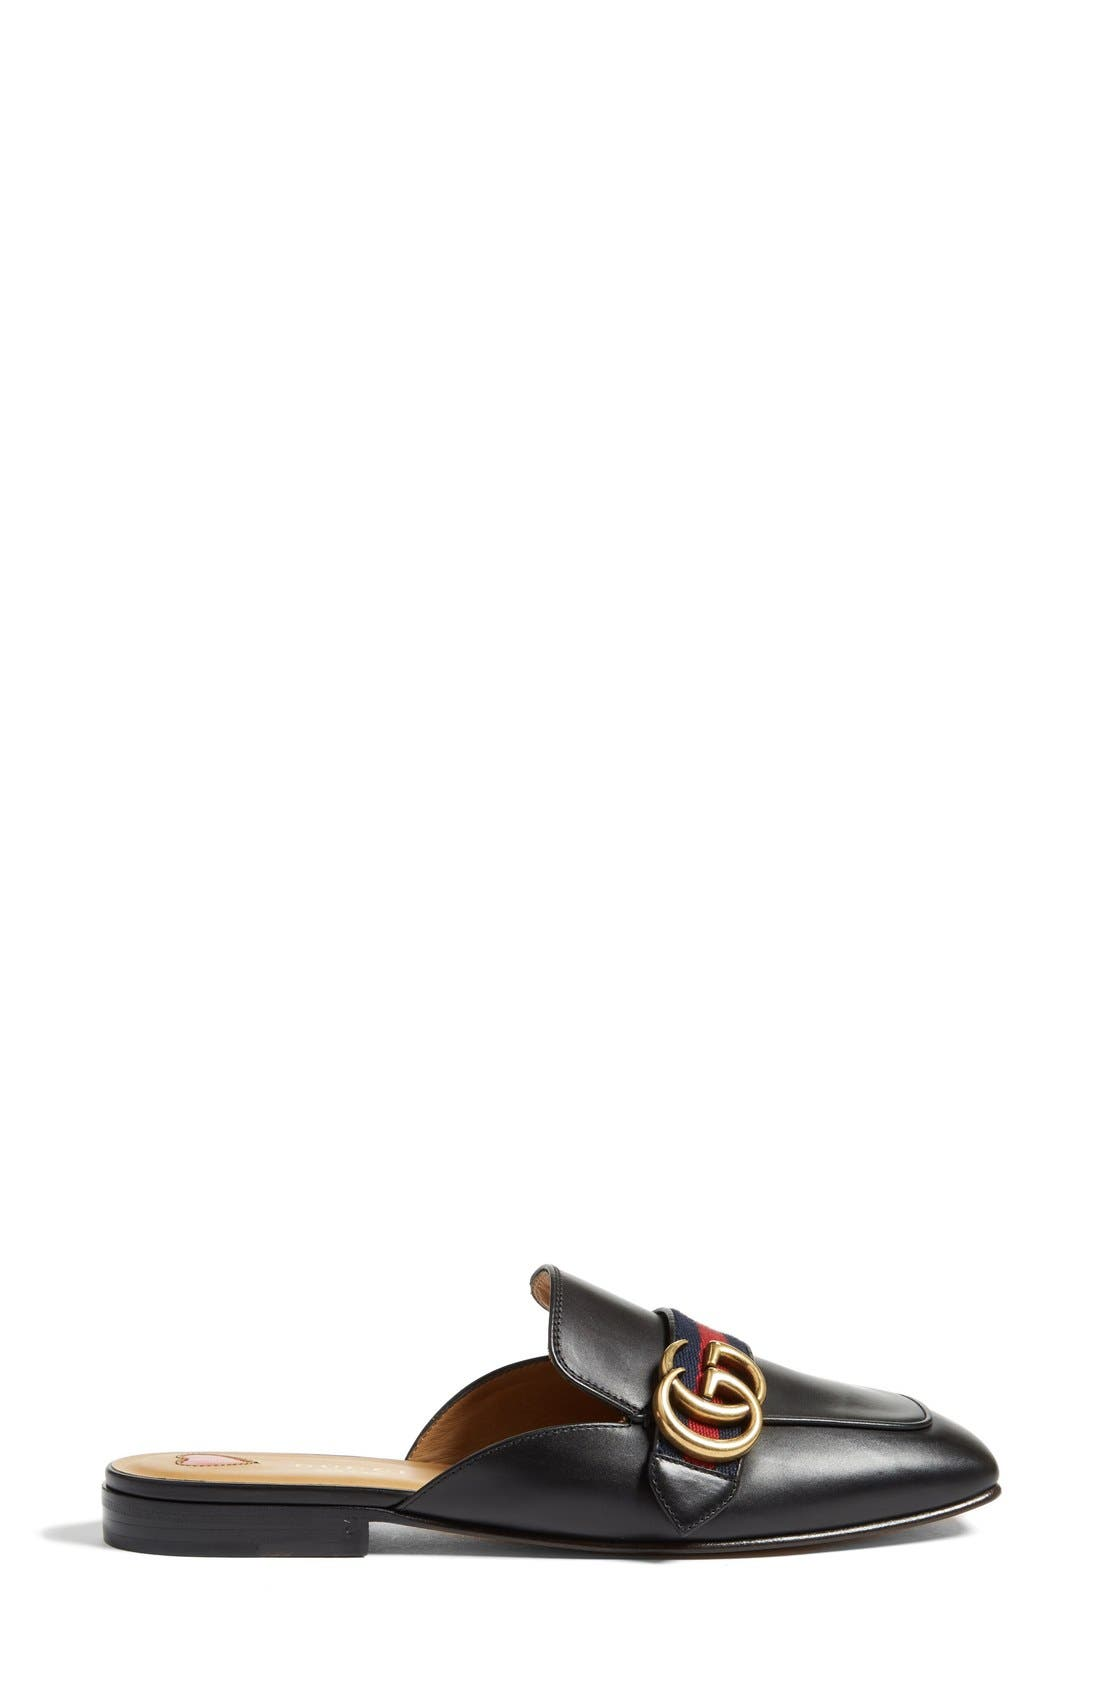 GUCCI, Loafer Mule, Alternate thumbnail 4, color, BLACK LEATHER